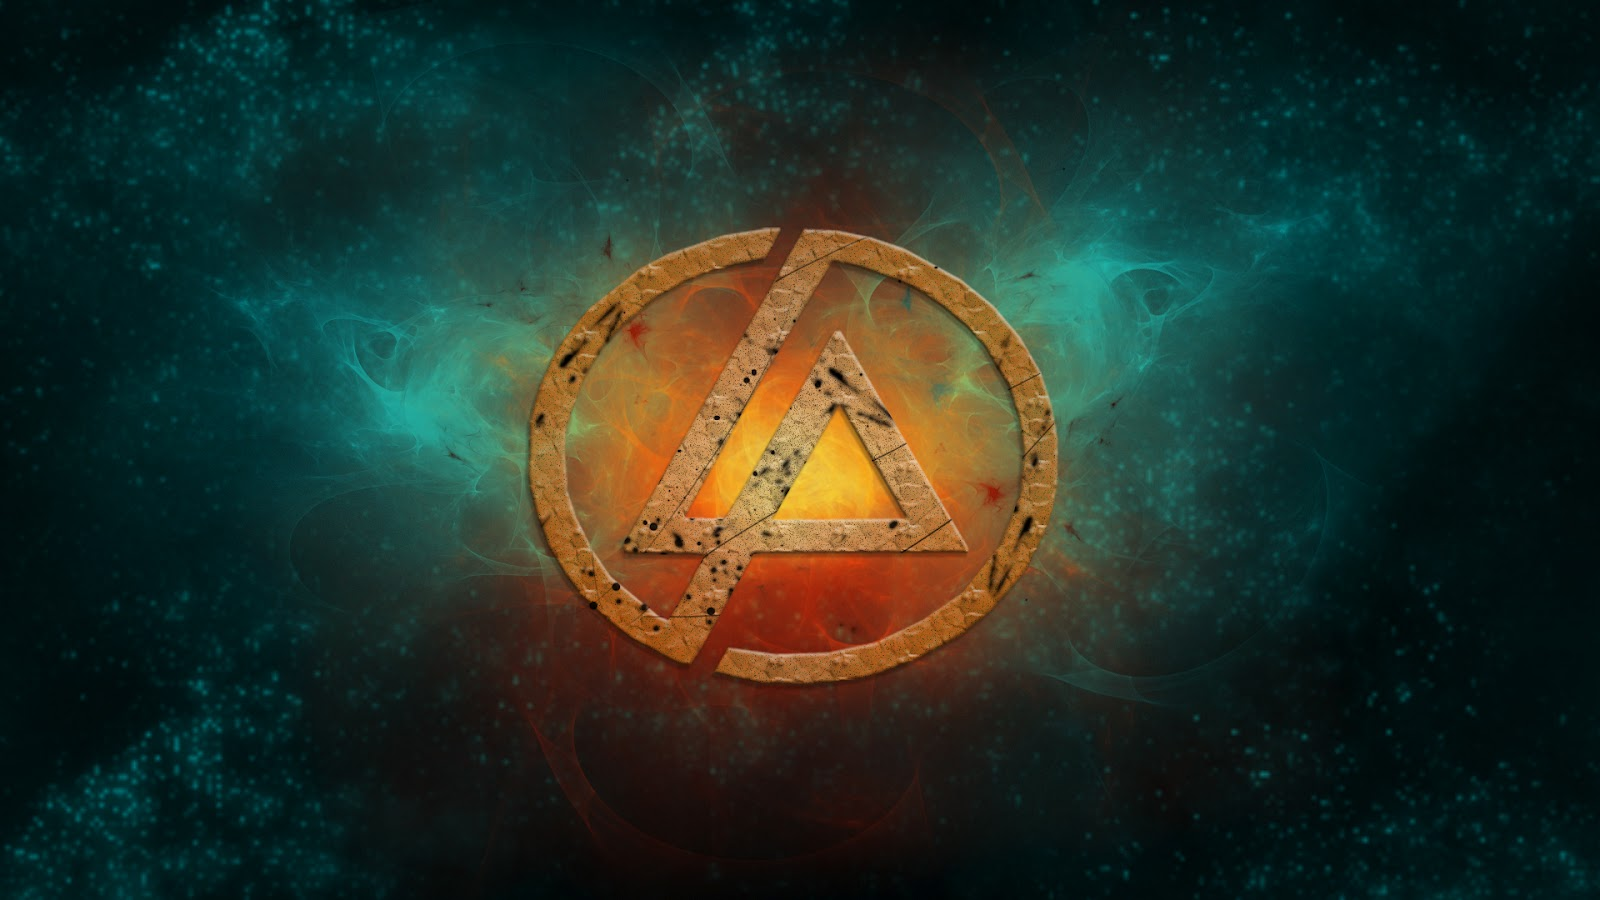 Iphone Wallpapers For Gamers Wallpapers Hd Linkin Park Banda De Rock Wallpapers De La